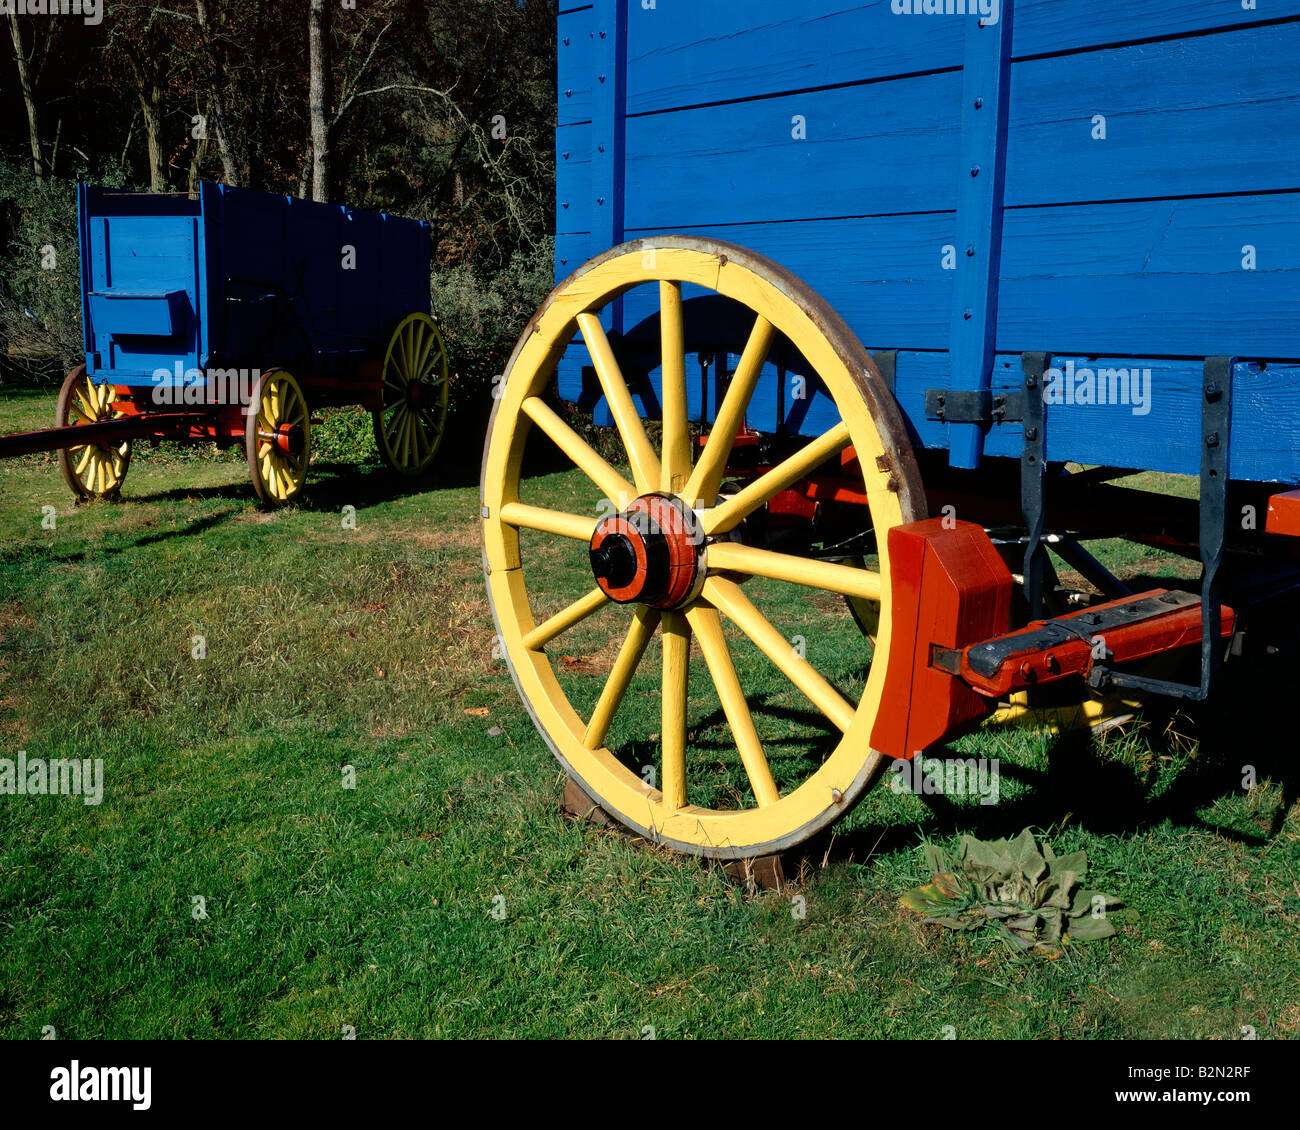 Wagon Wheel of Ore wagons at the Marshall Gold Discovery Historic Park, California, by Willard Clay/Dembinsky Photo - Stock Image